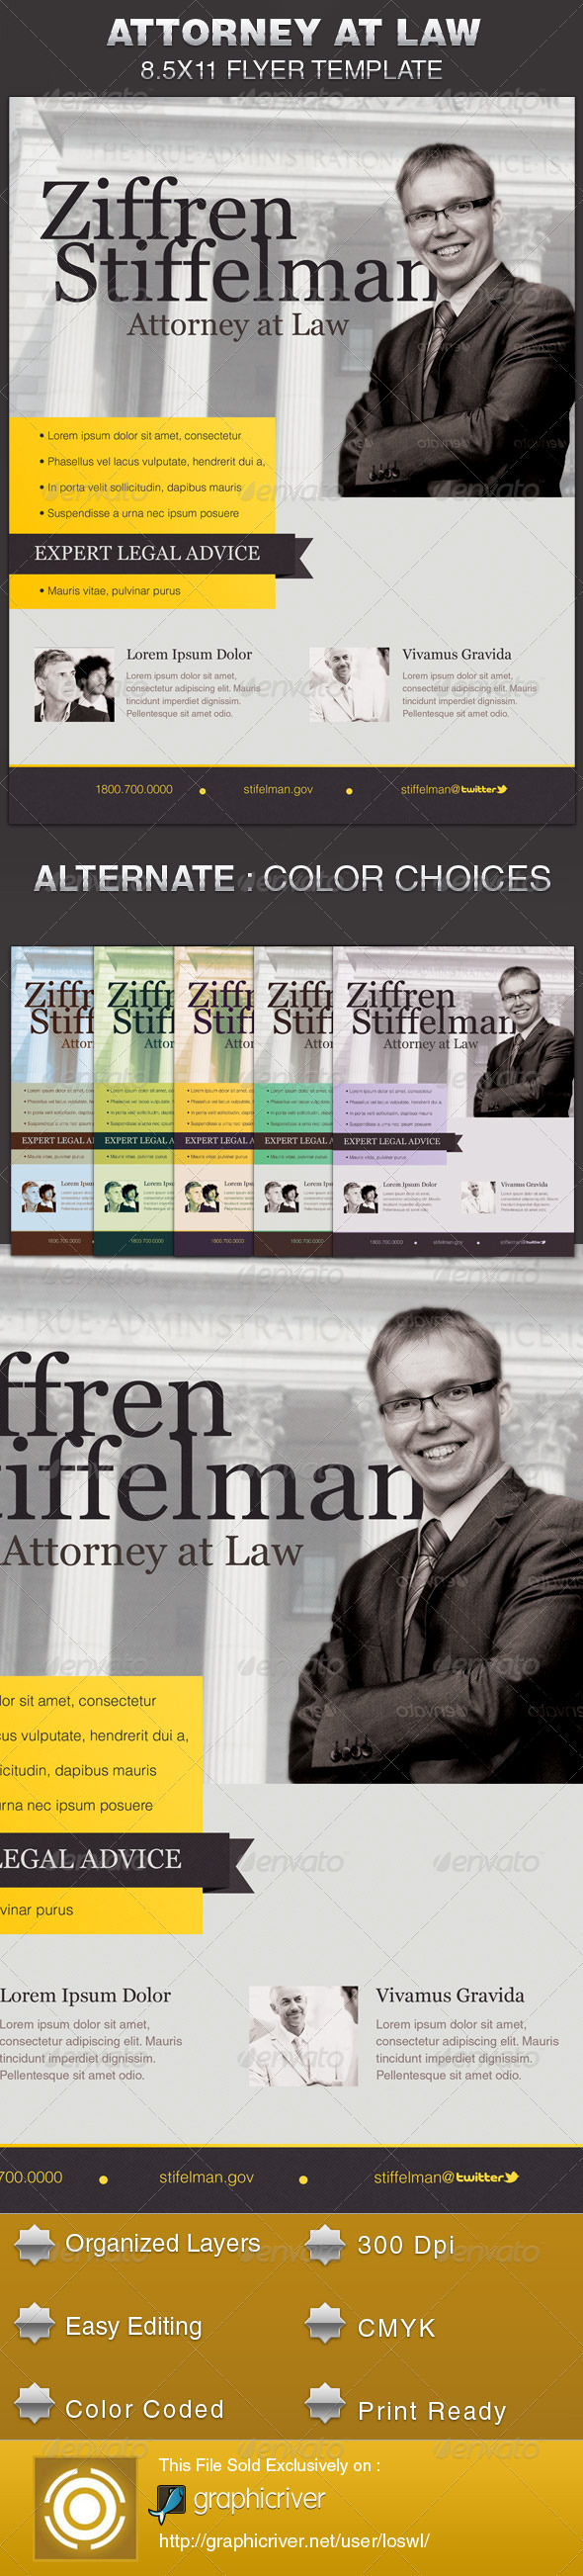 attorney at law flyer template on behance